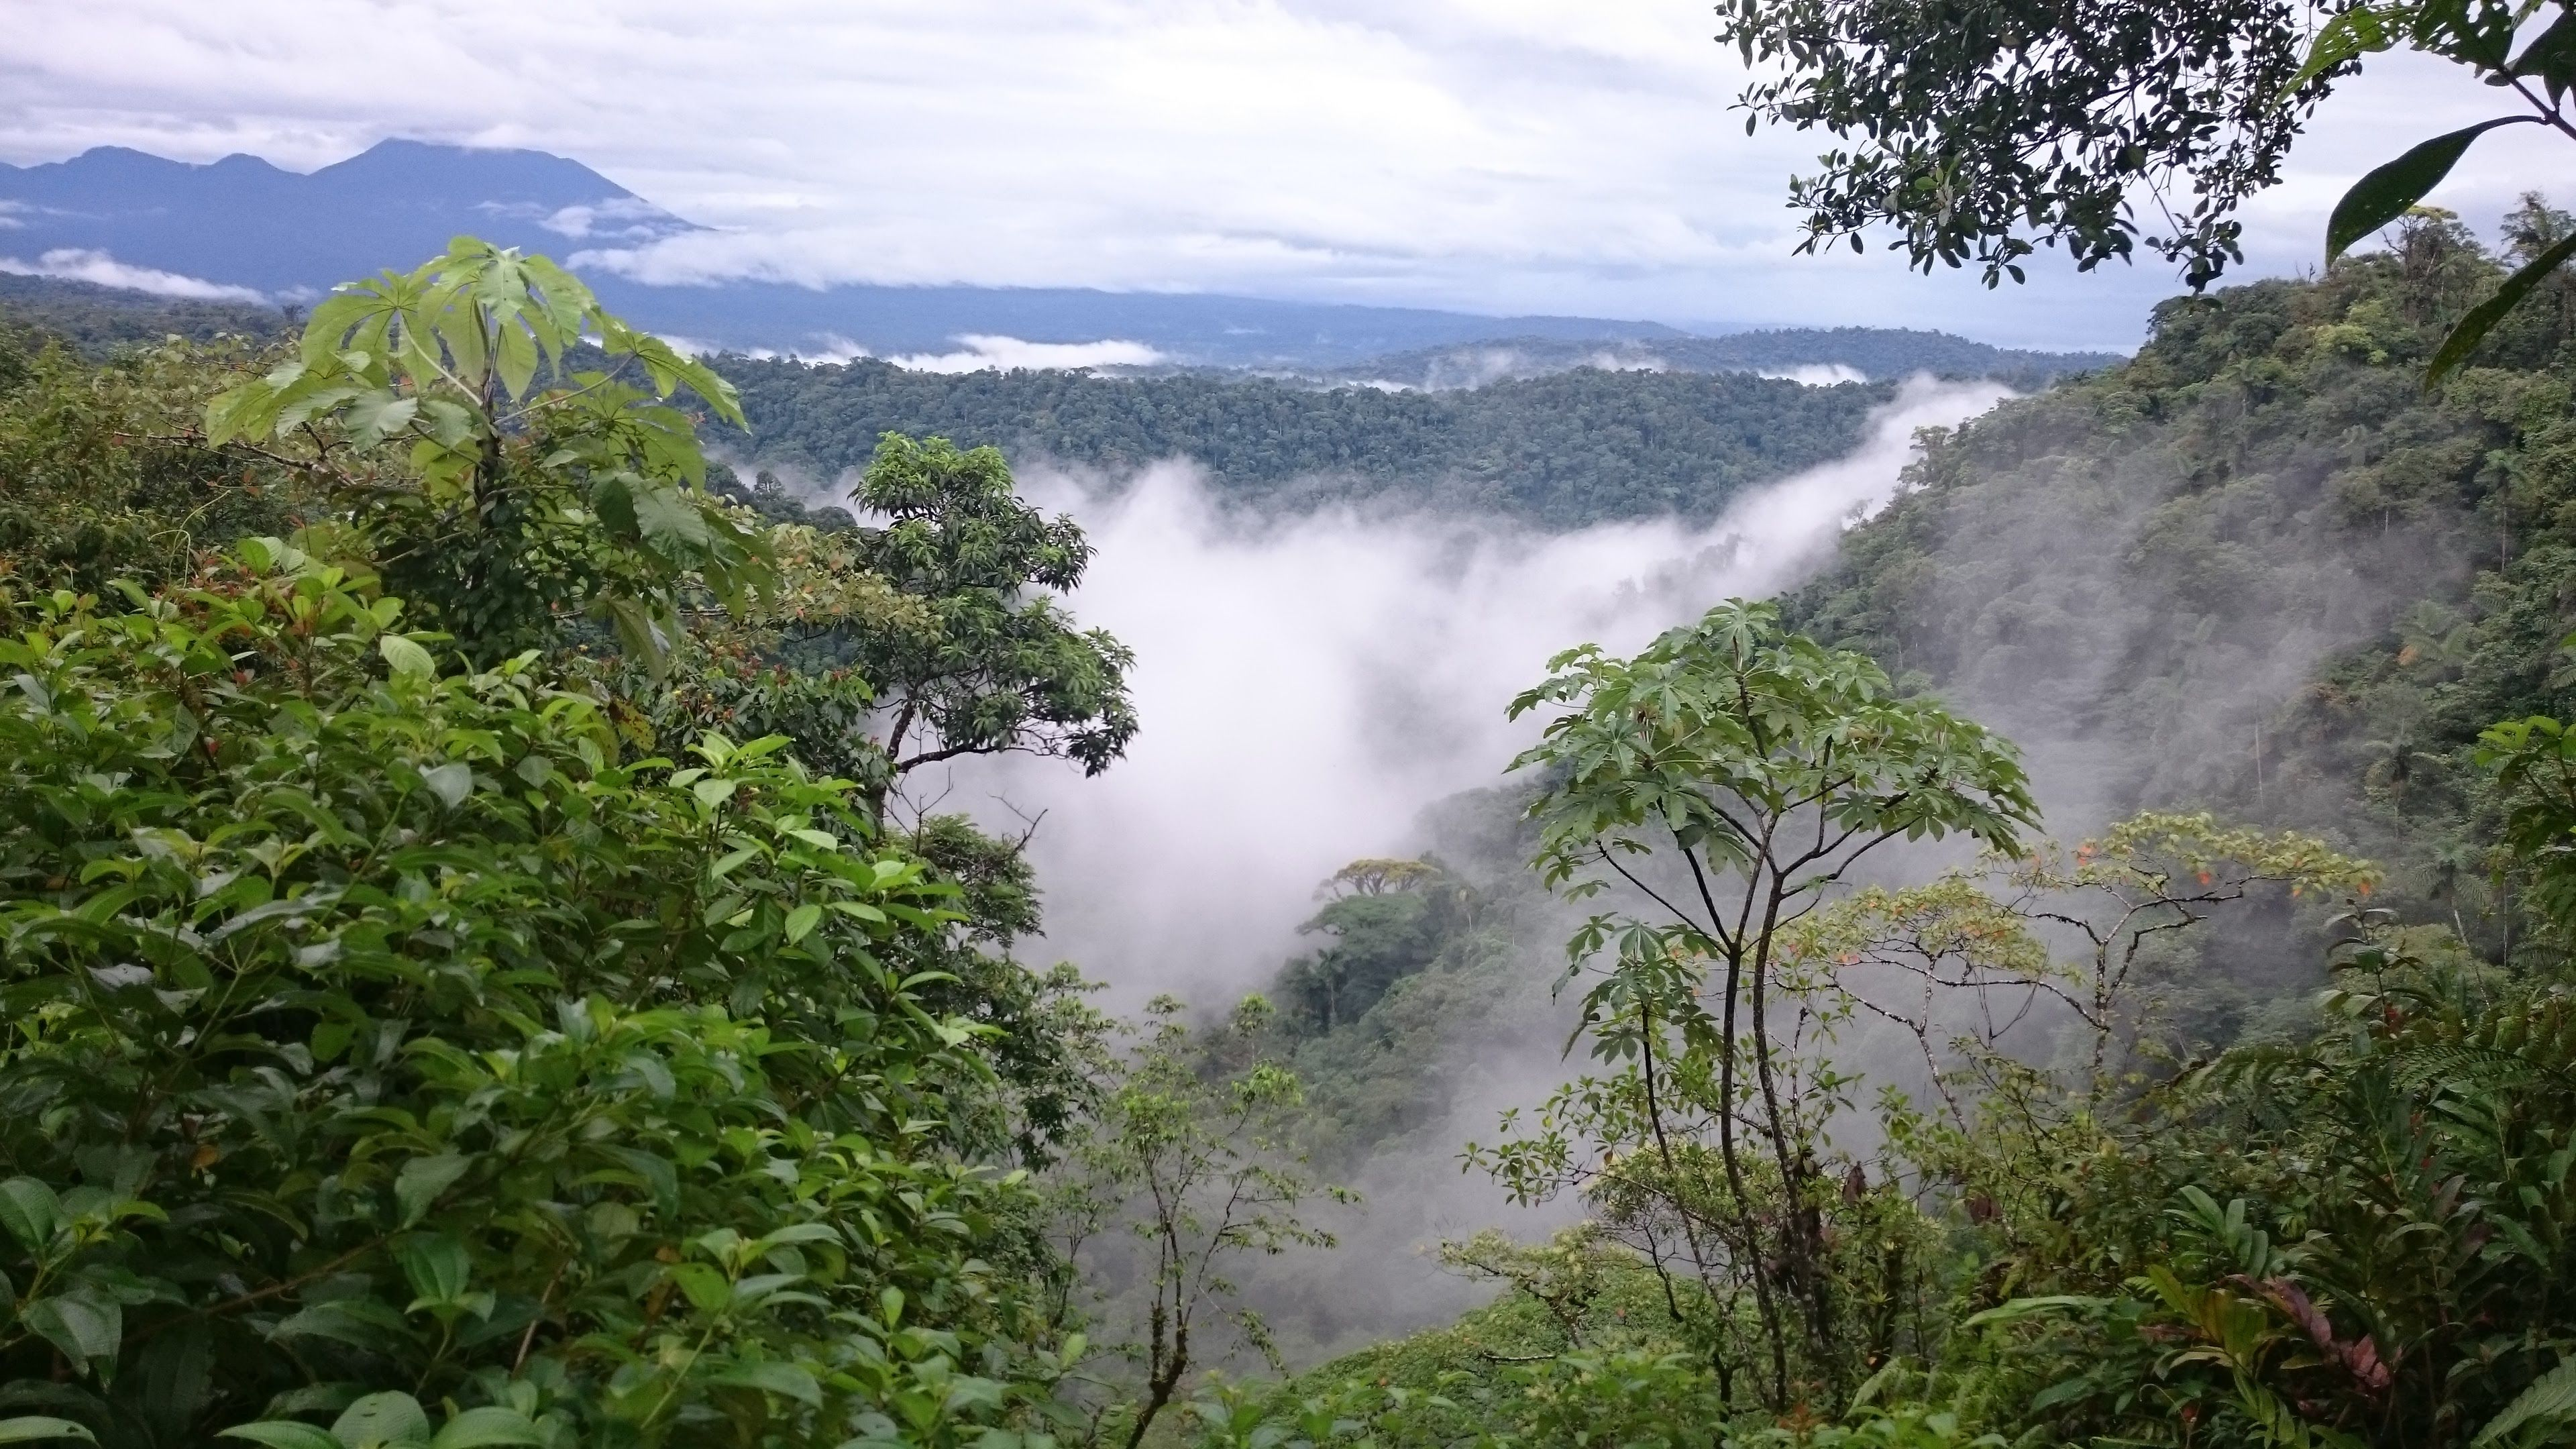 clouds sitting on Costa Rican rainforest mountains